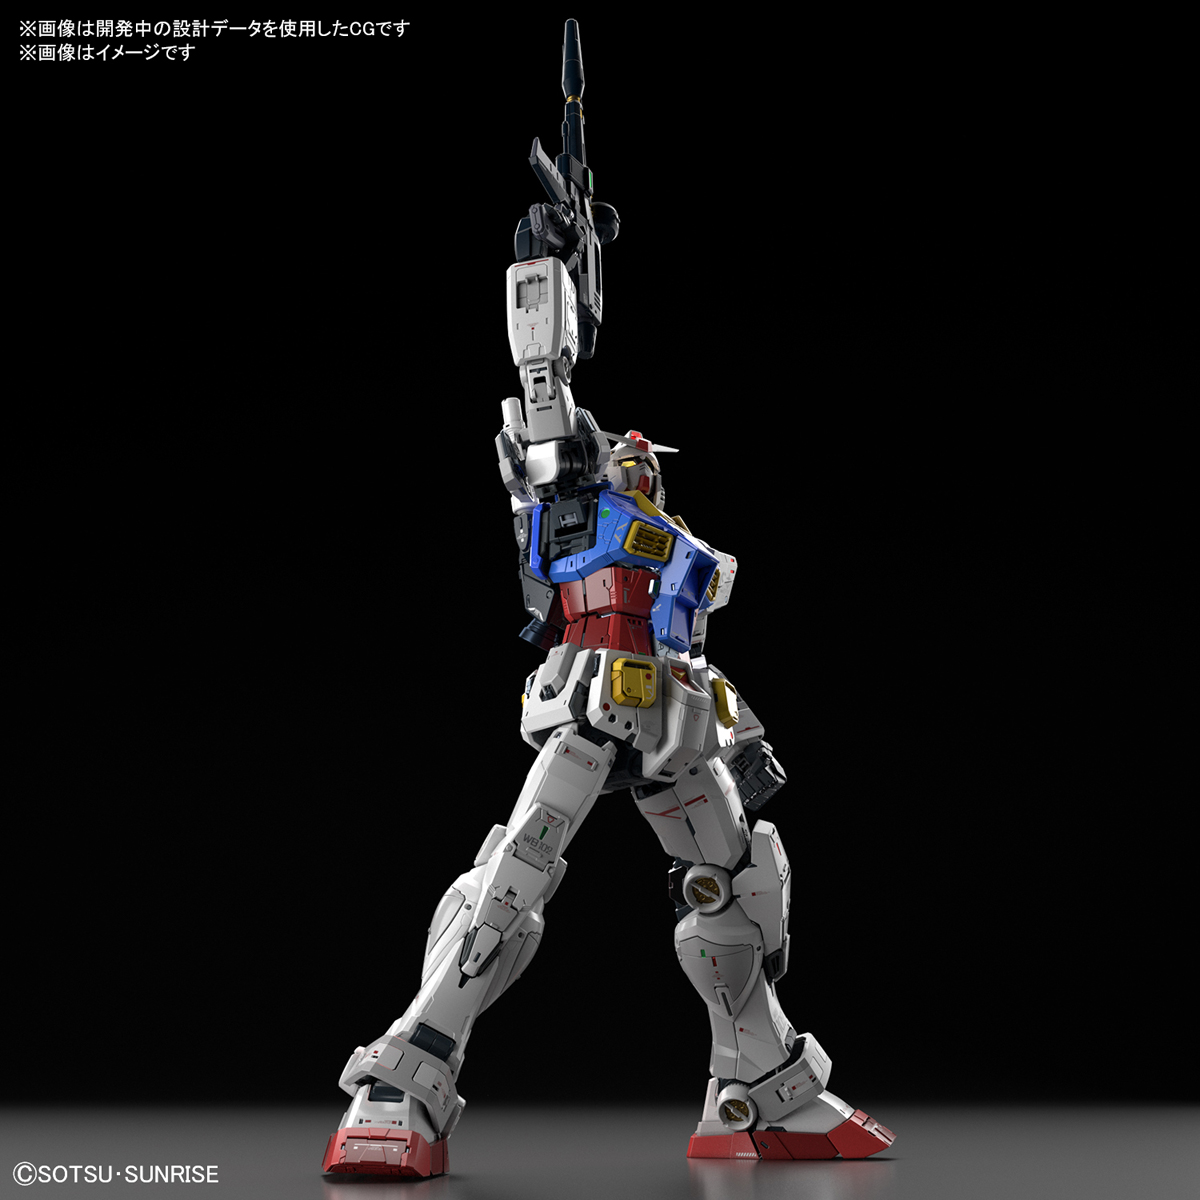 PERFECT GRADE UNLEASHED 1/60 RX-78-2 ガンダムのイメージ07